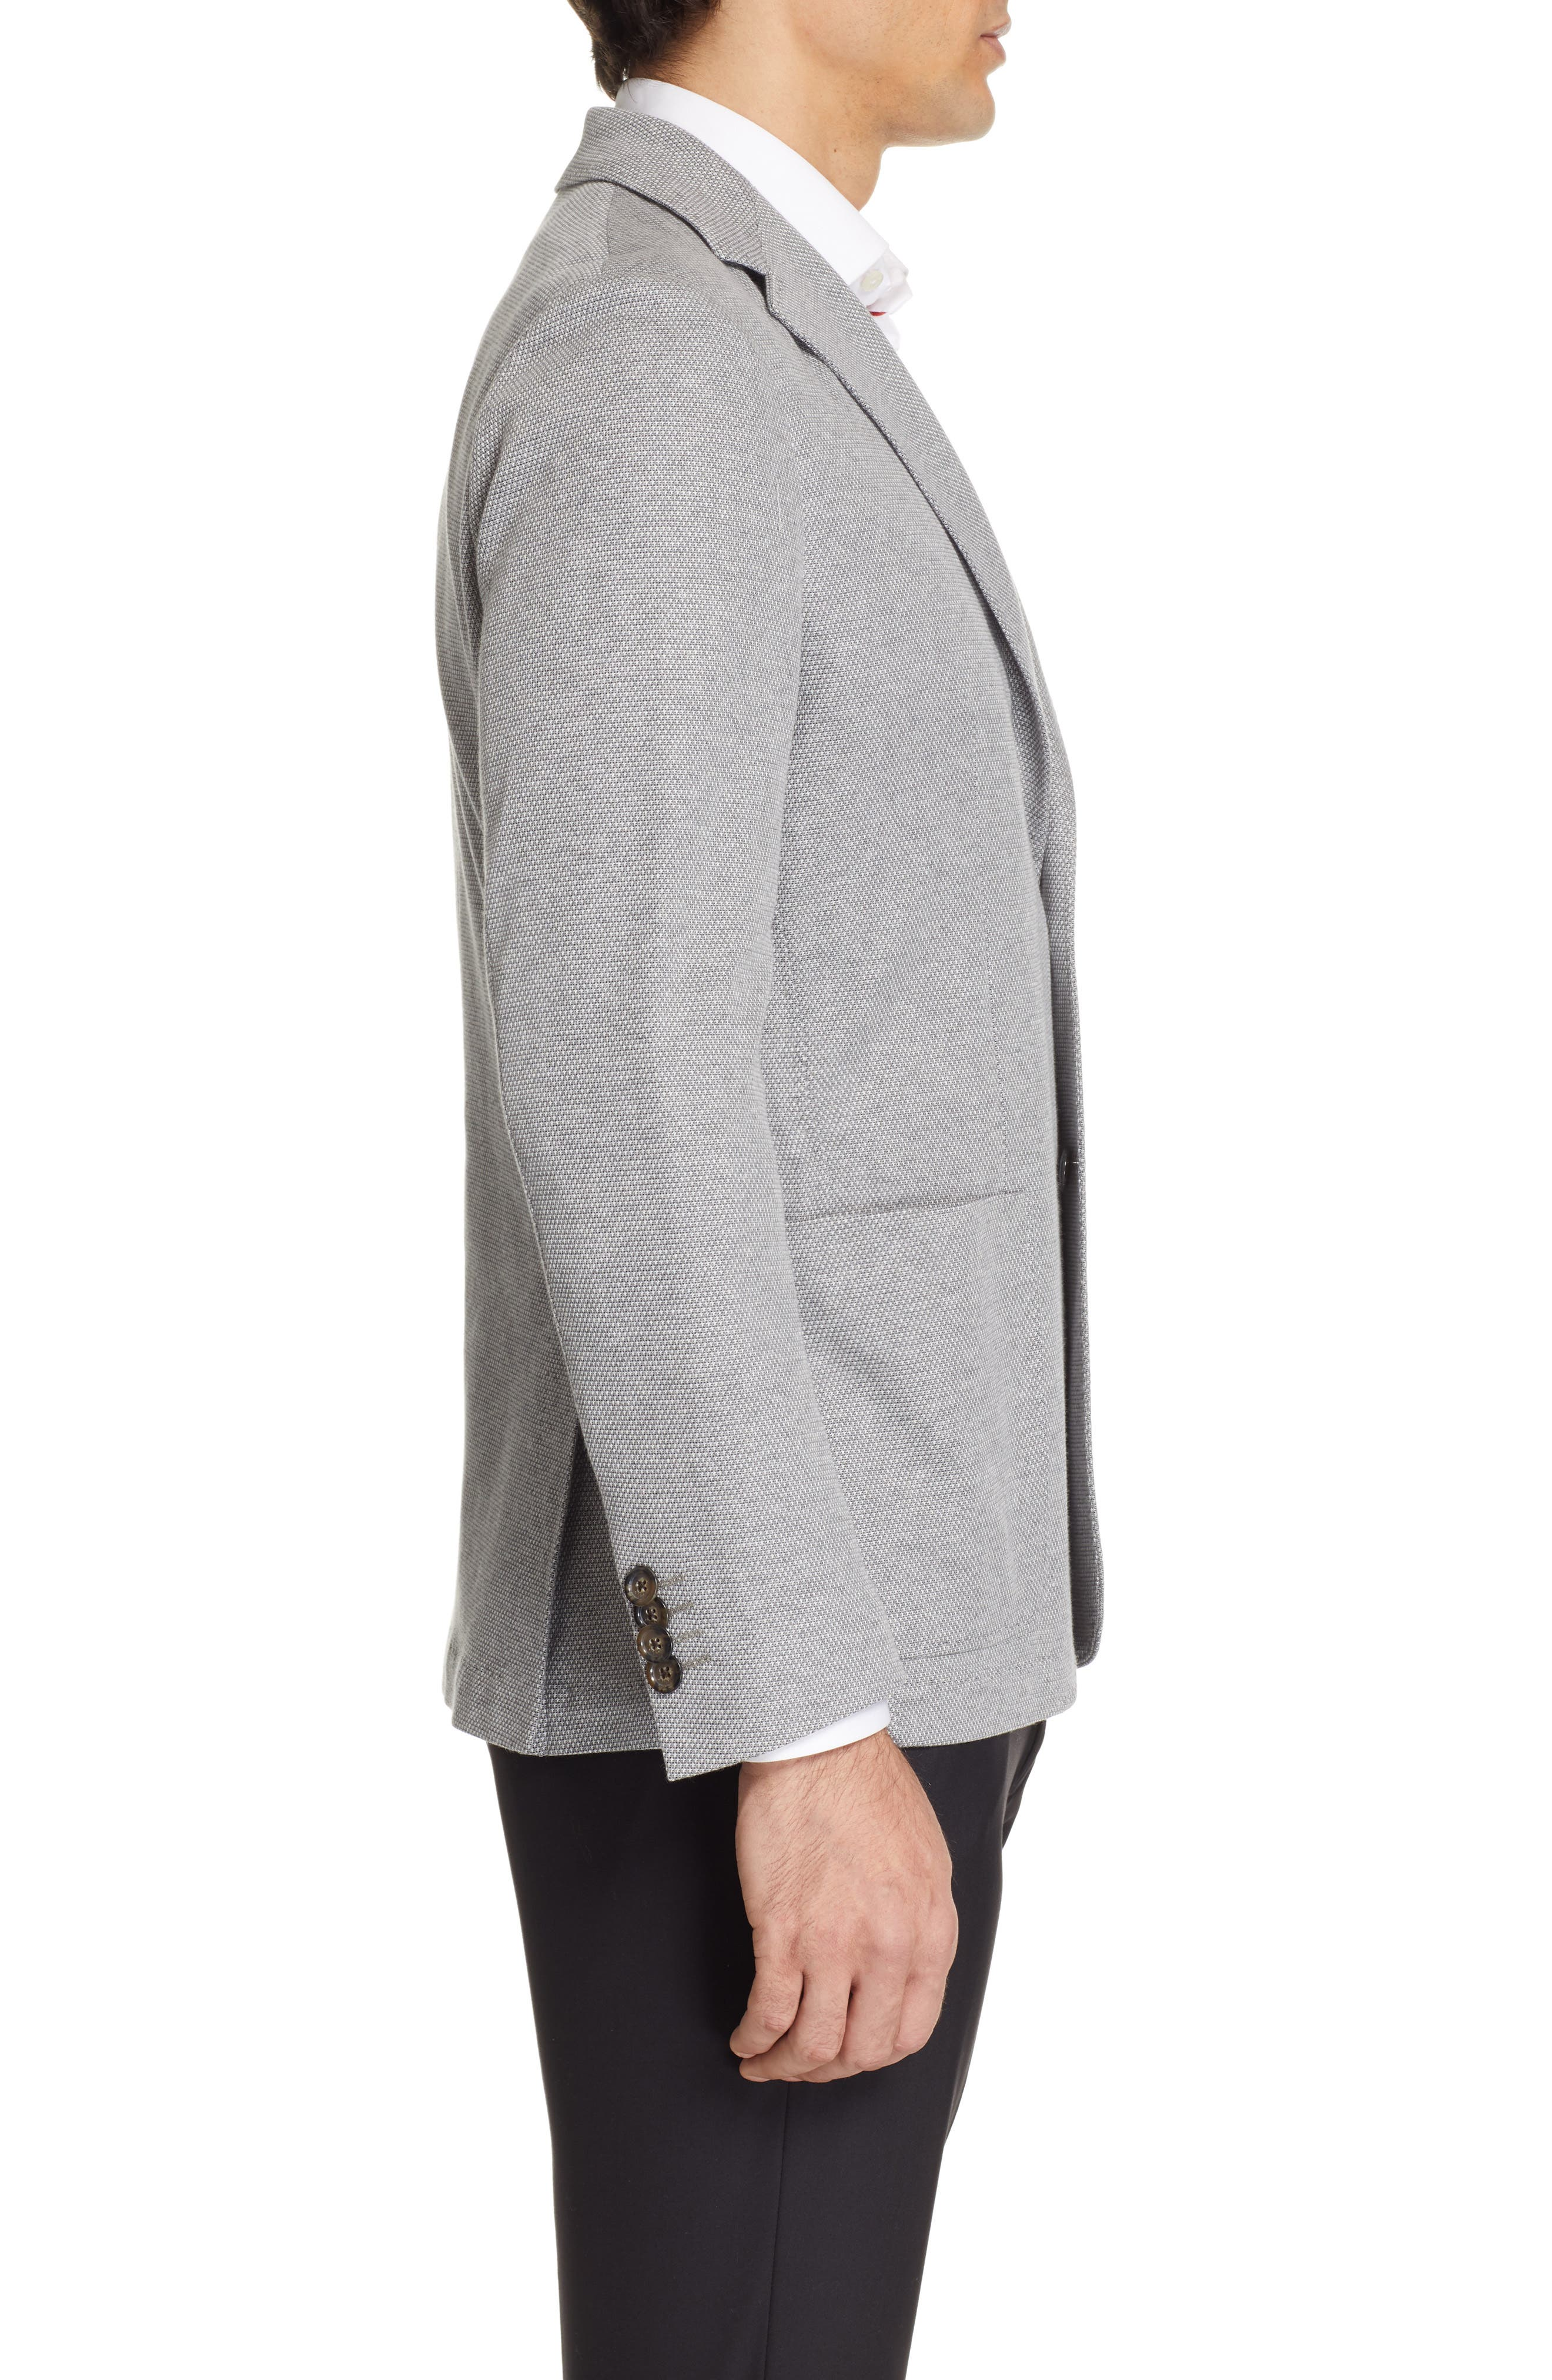 CANALI, Classic Fit Washed Sport Coat, Alternate thumbnail 3, color, LIGHT GREY